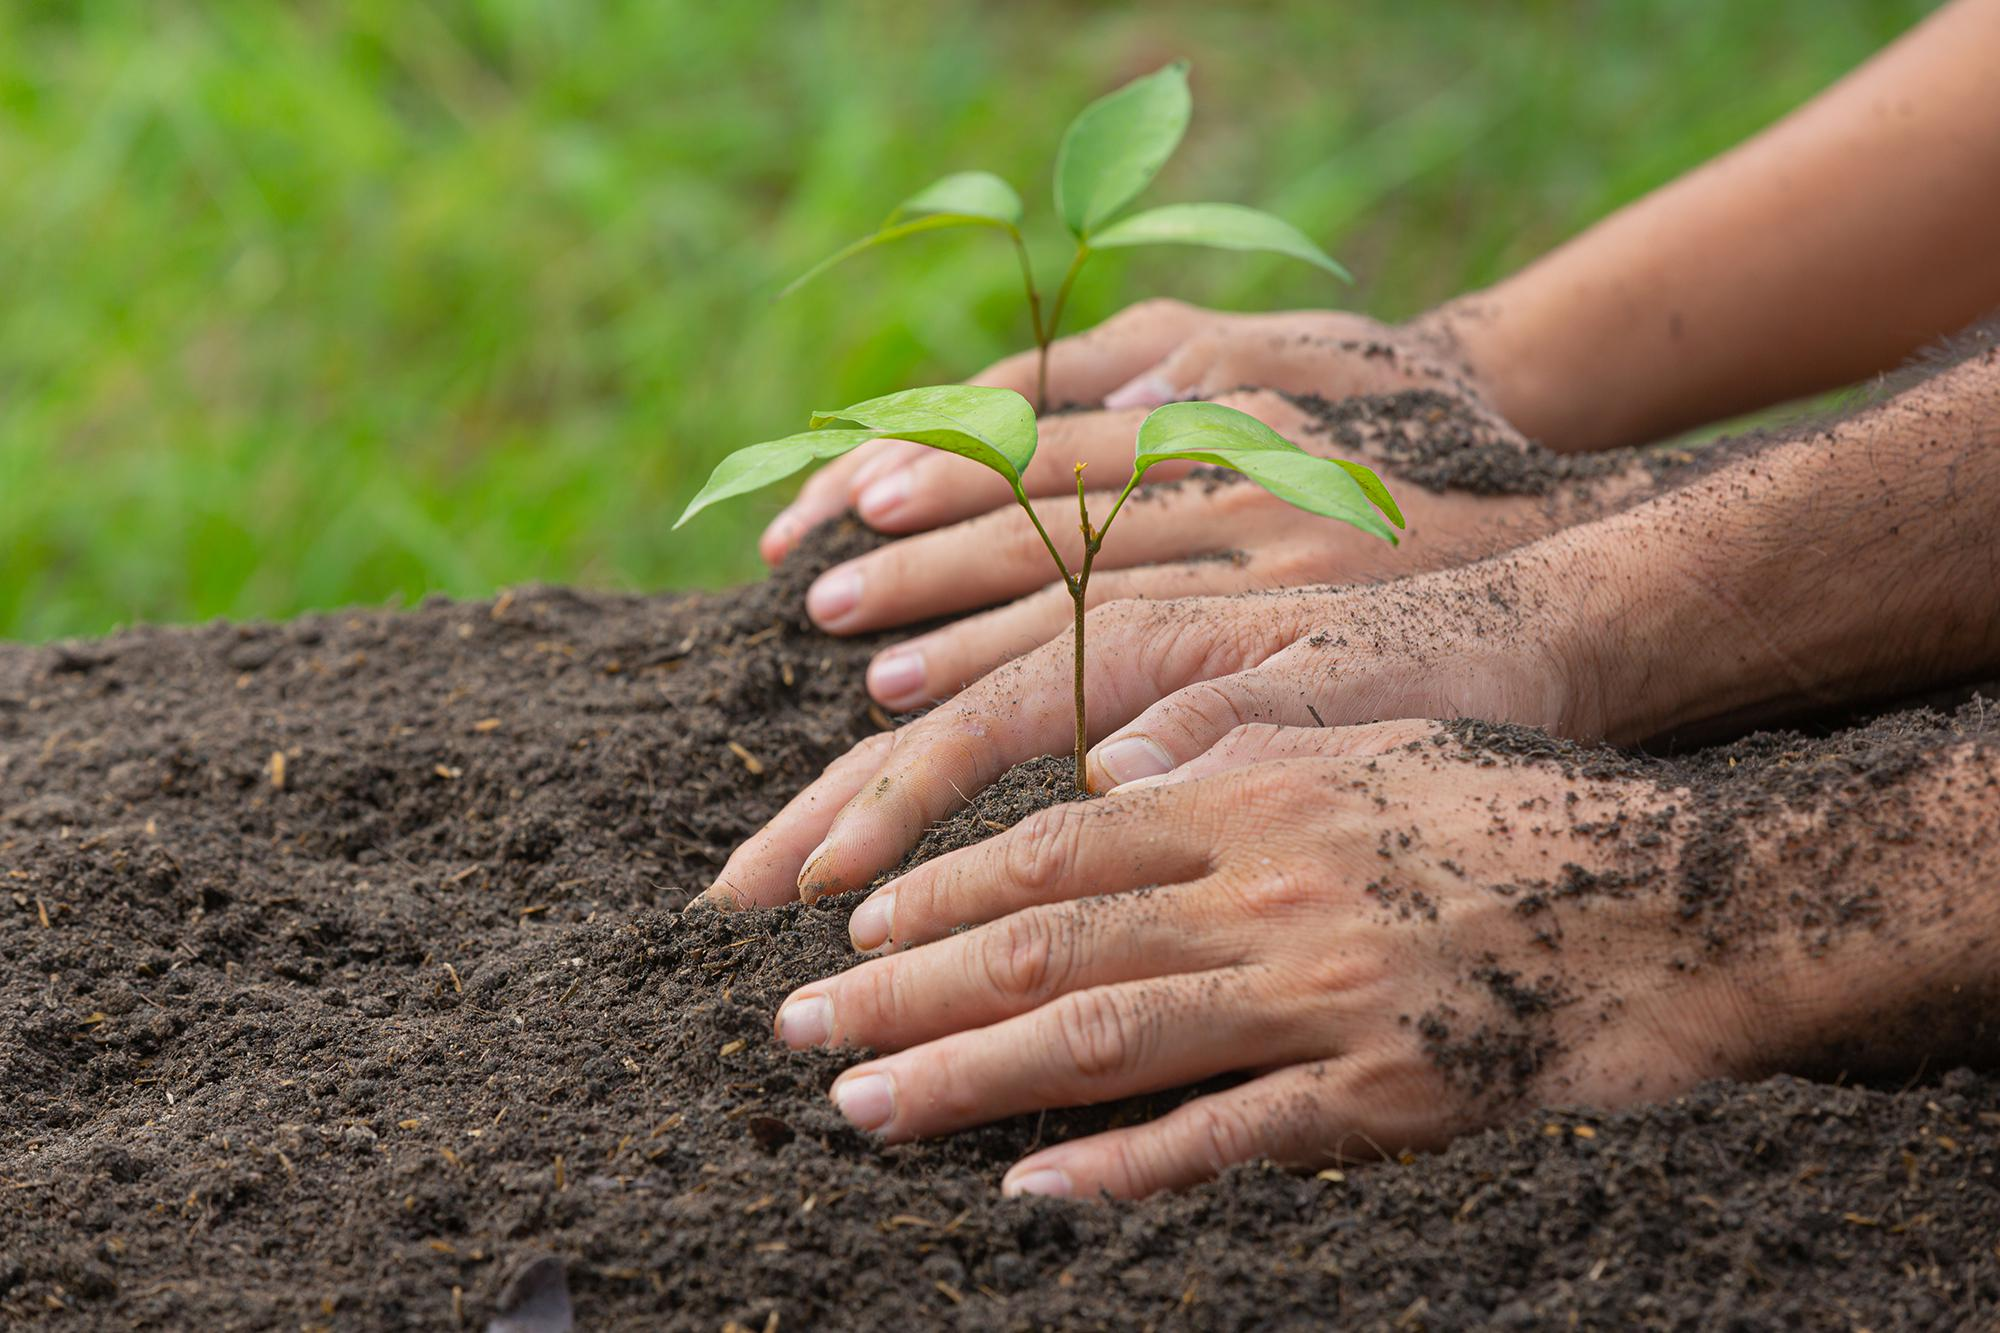 two sets of hands planting two saplings into the ground